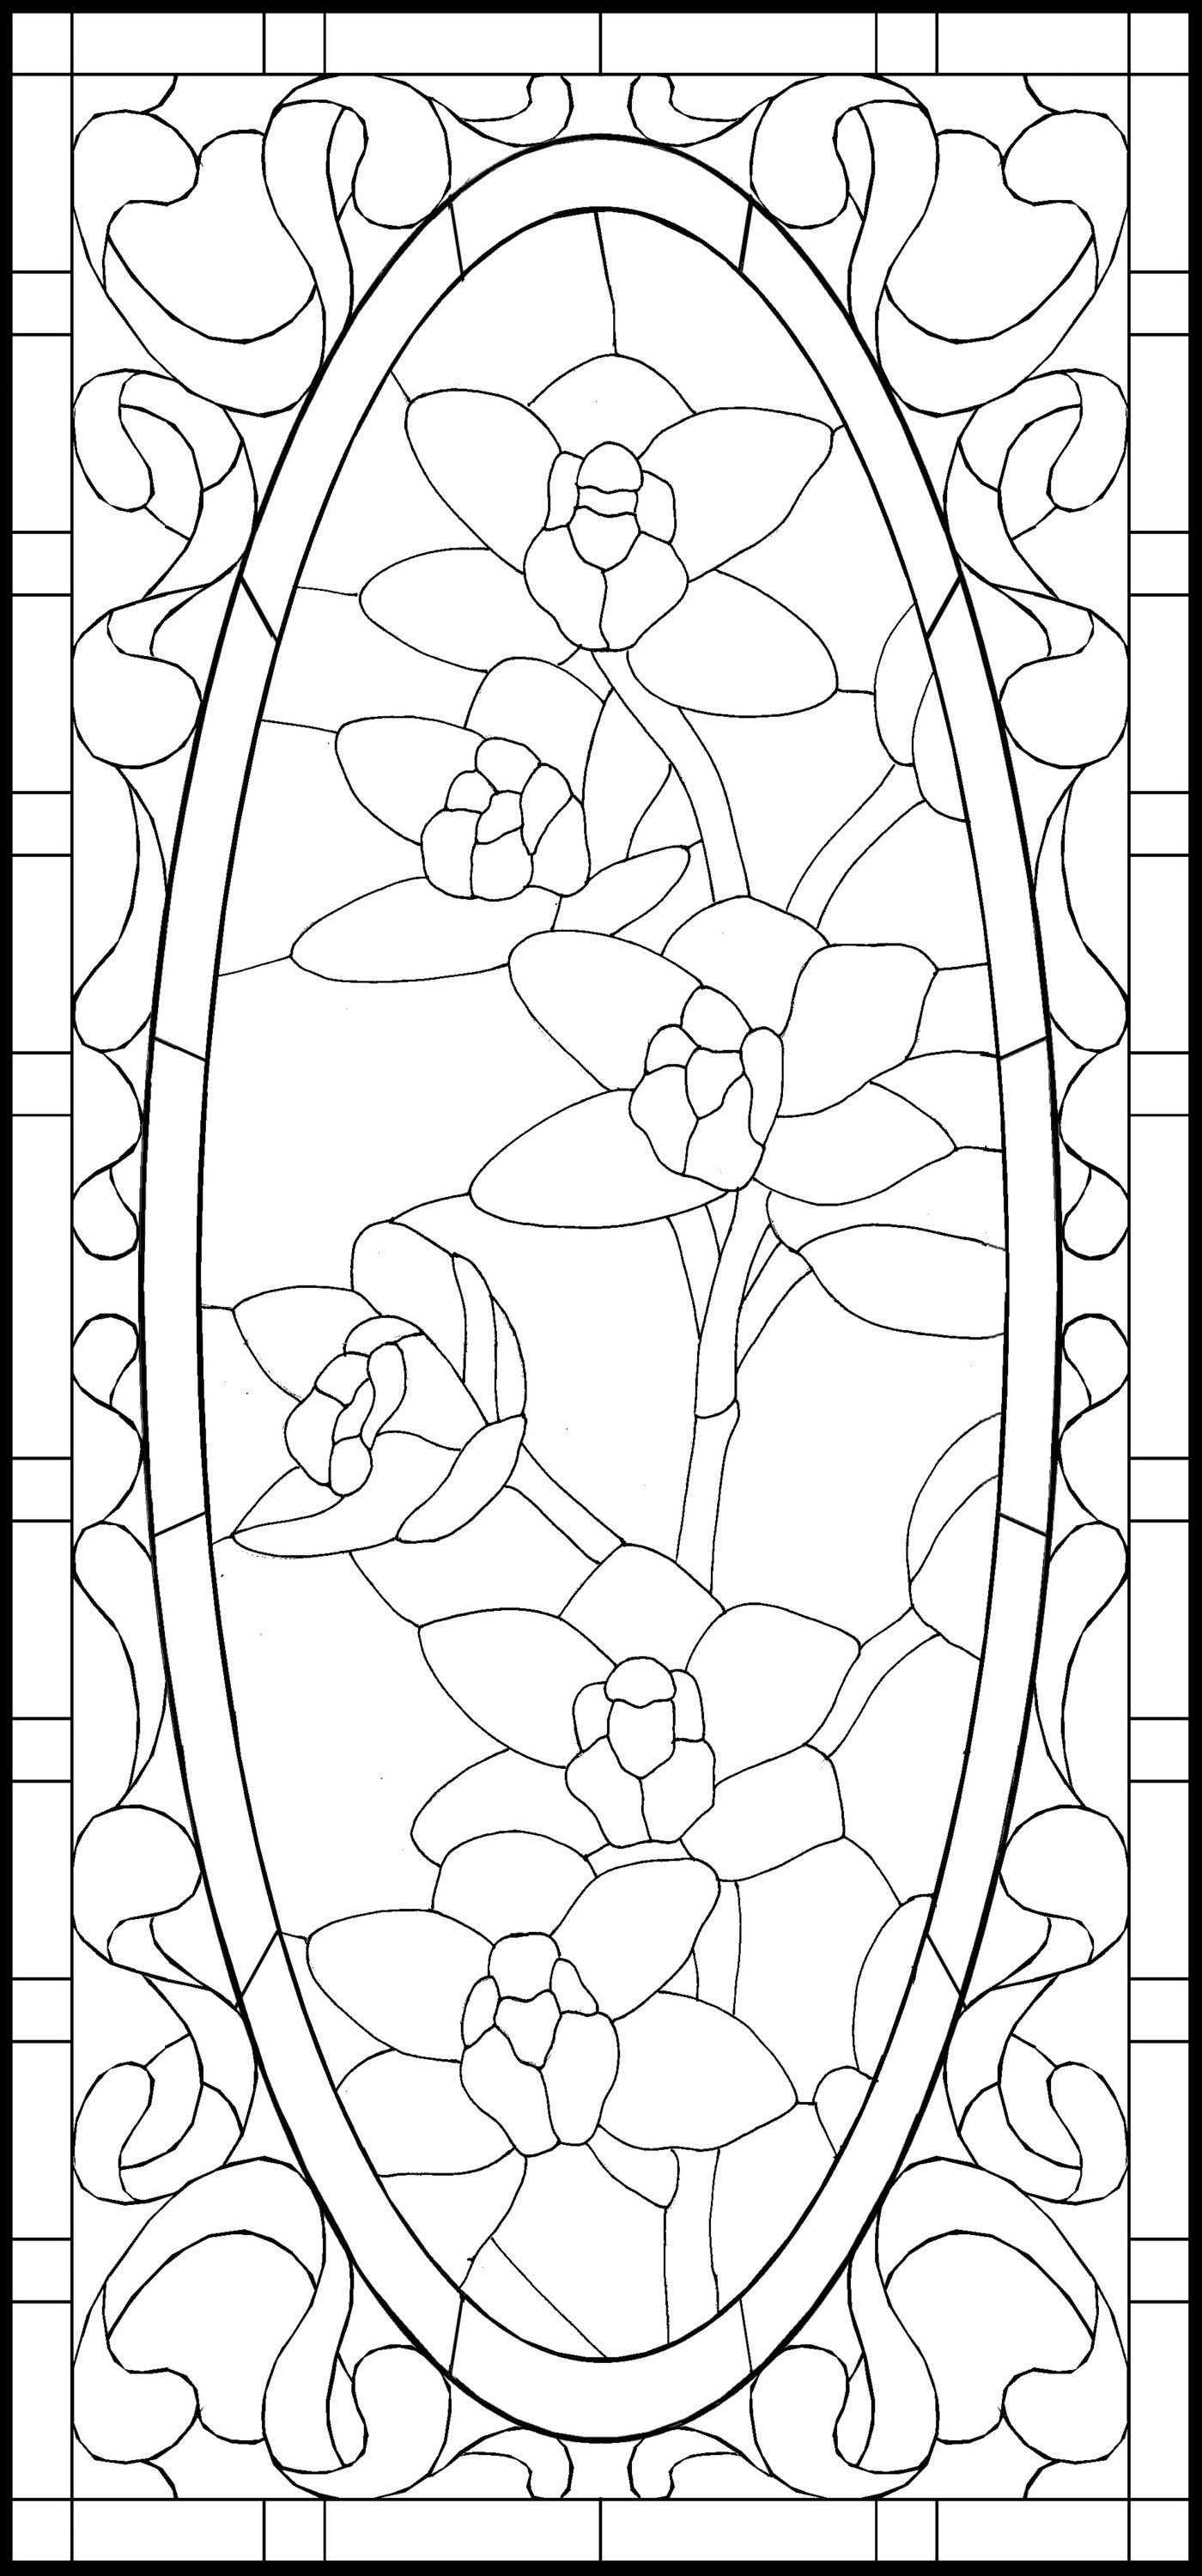 Template Stained Glass Patterns Stained Glass Designs Glass Art